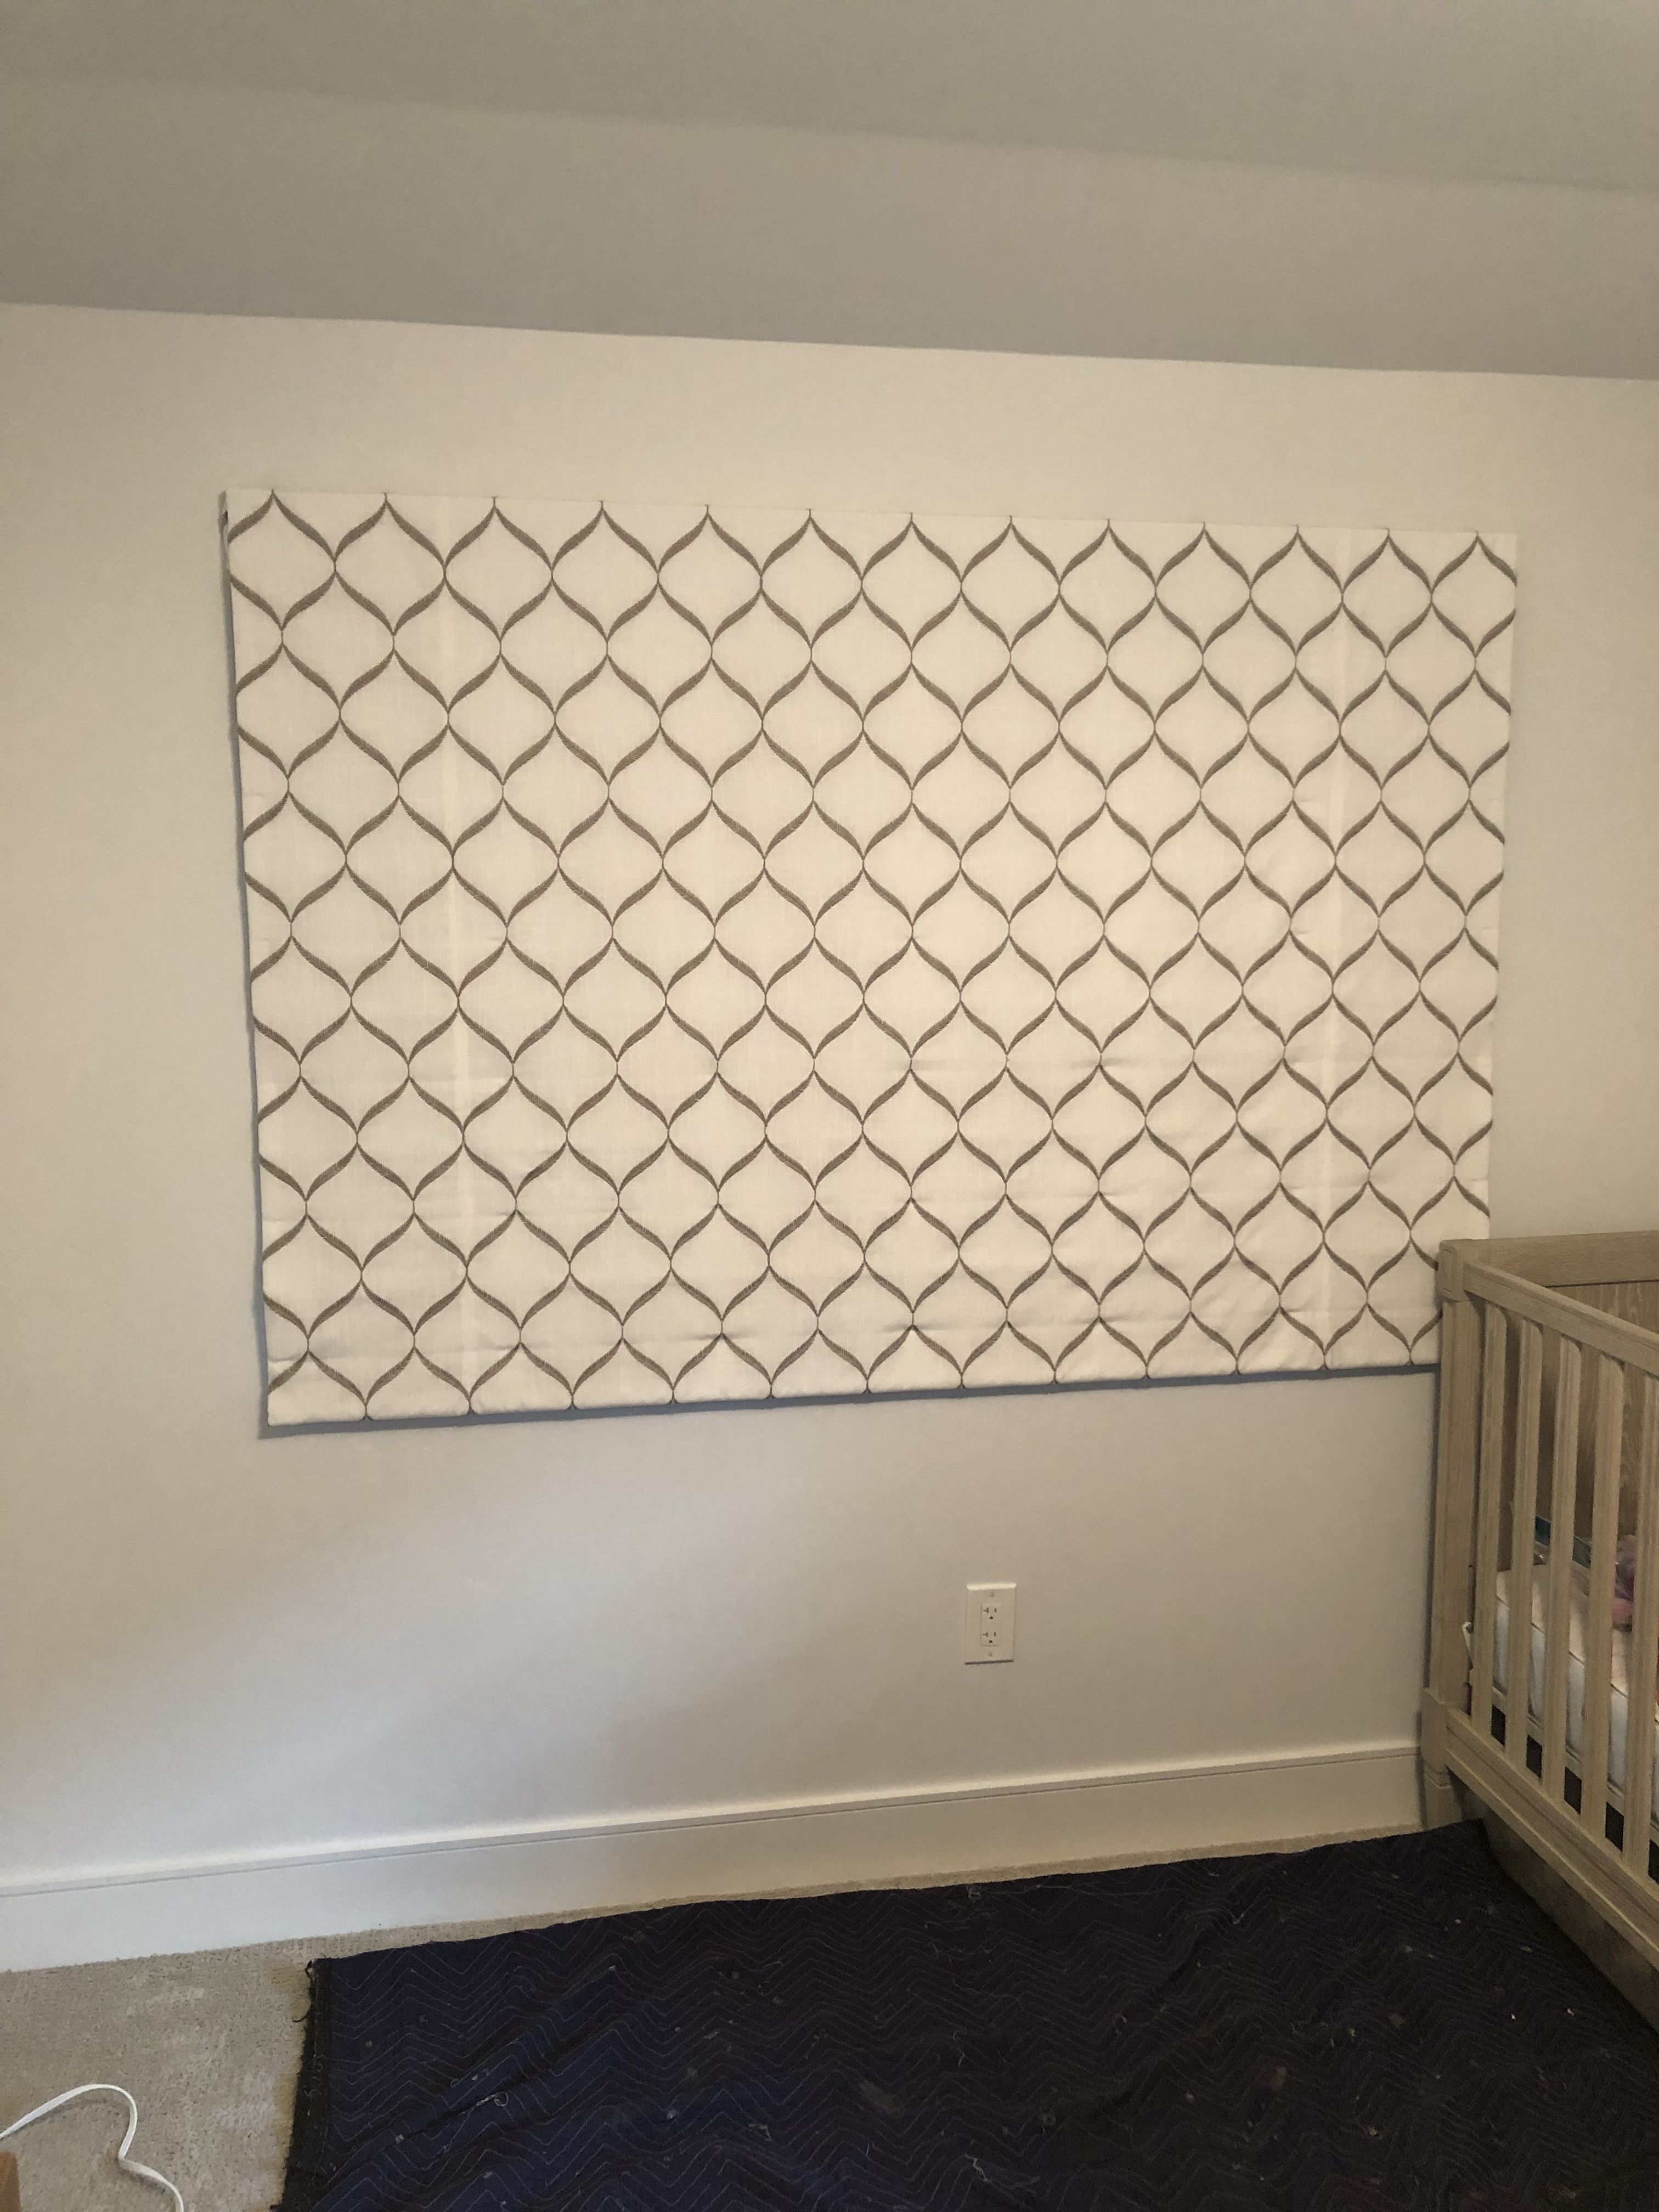 Outside Mount Blackout Roman Shades For The Nursery By Umami Interiors Custom Window Coverings Window Coverings Custom Window Treatments